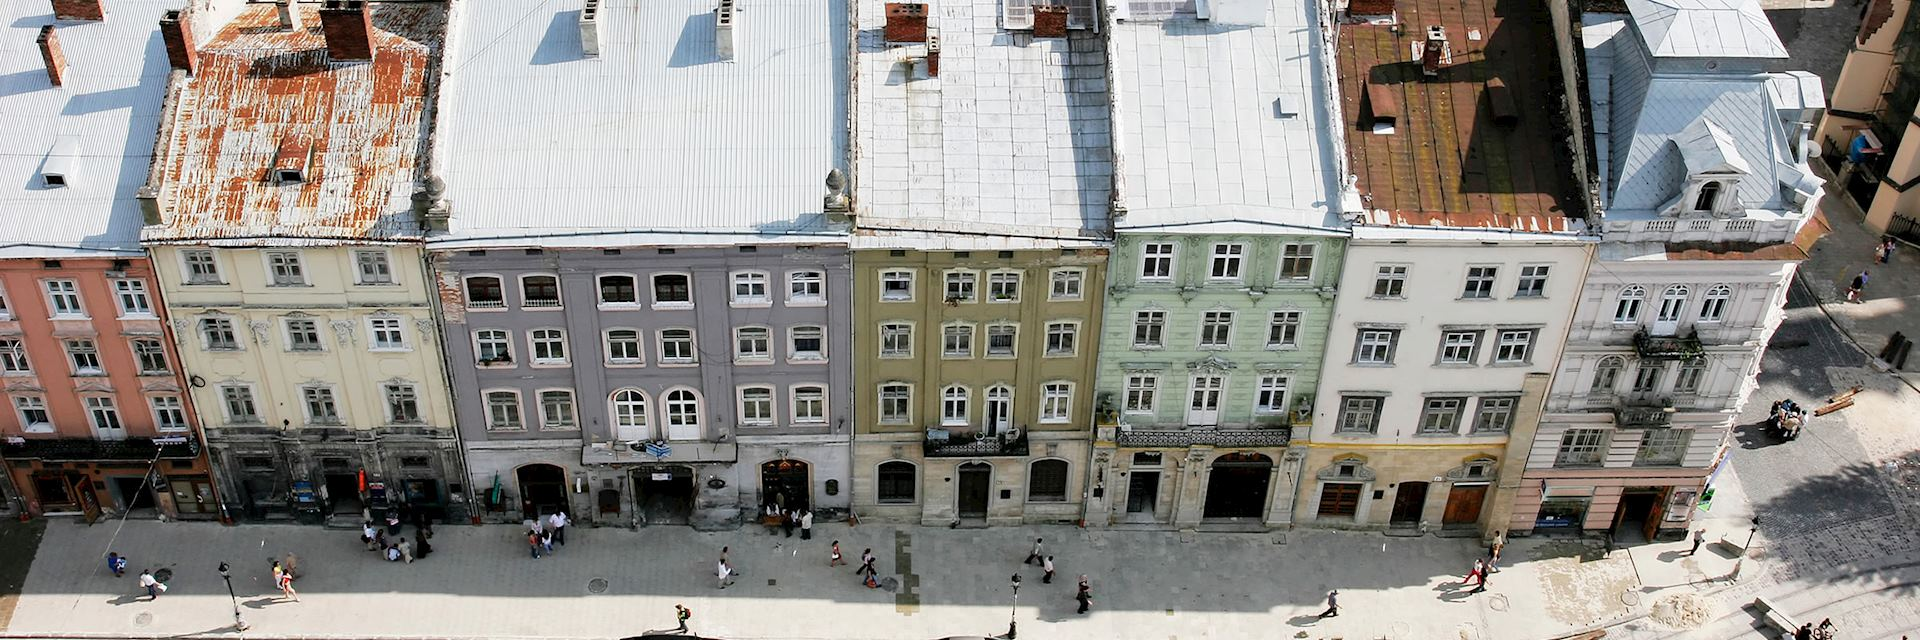 Aerial view of a street in Ukraine